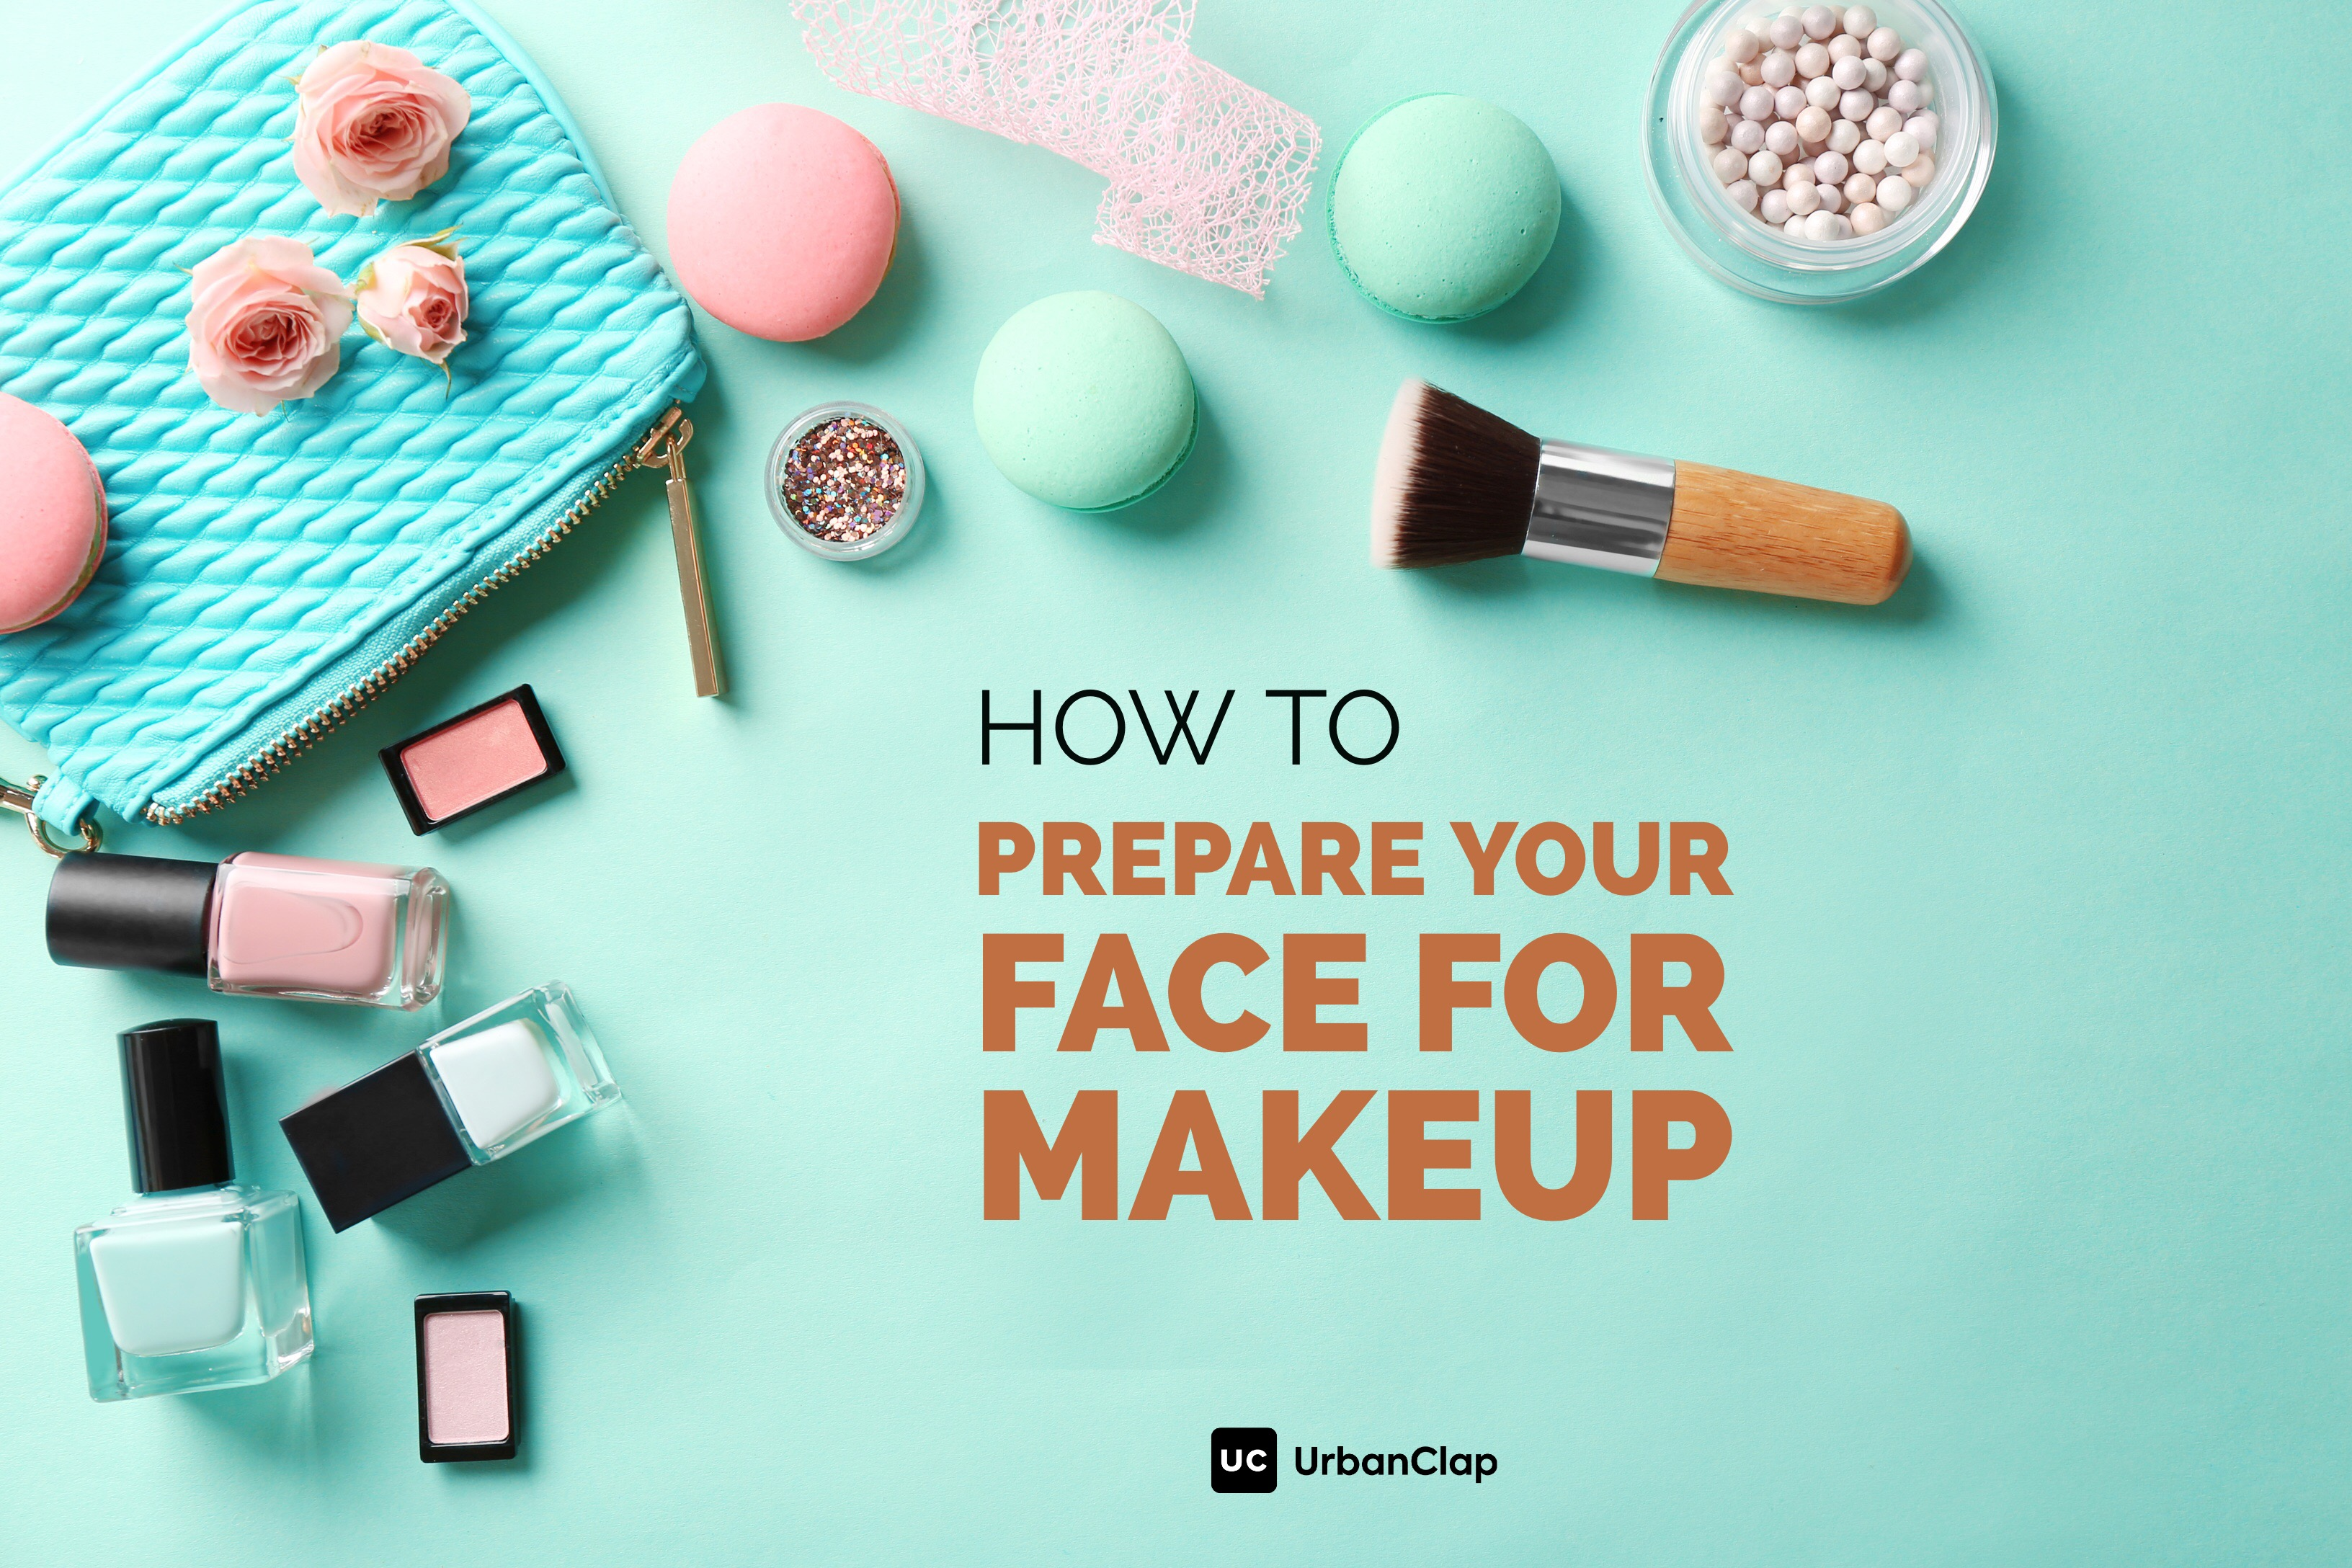 How to prepare your face for makeup